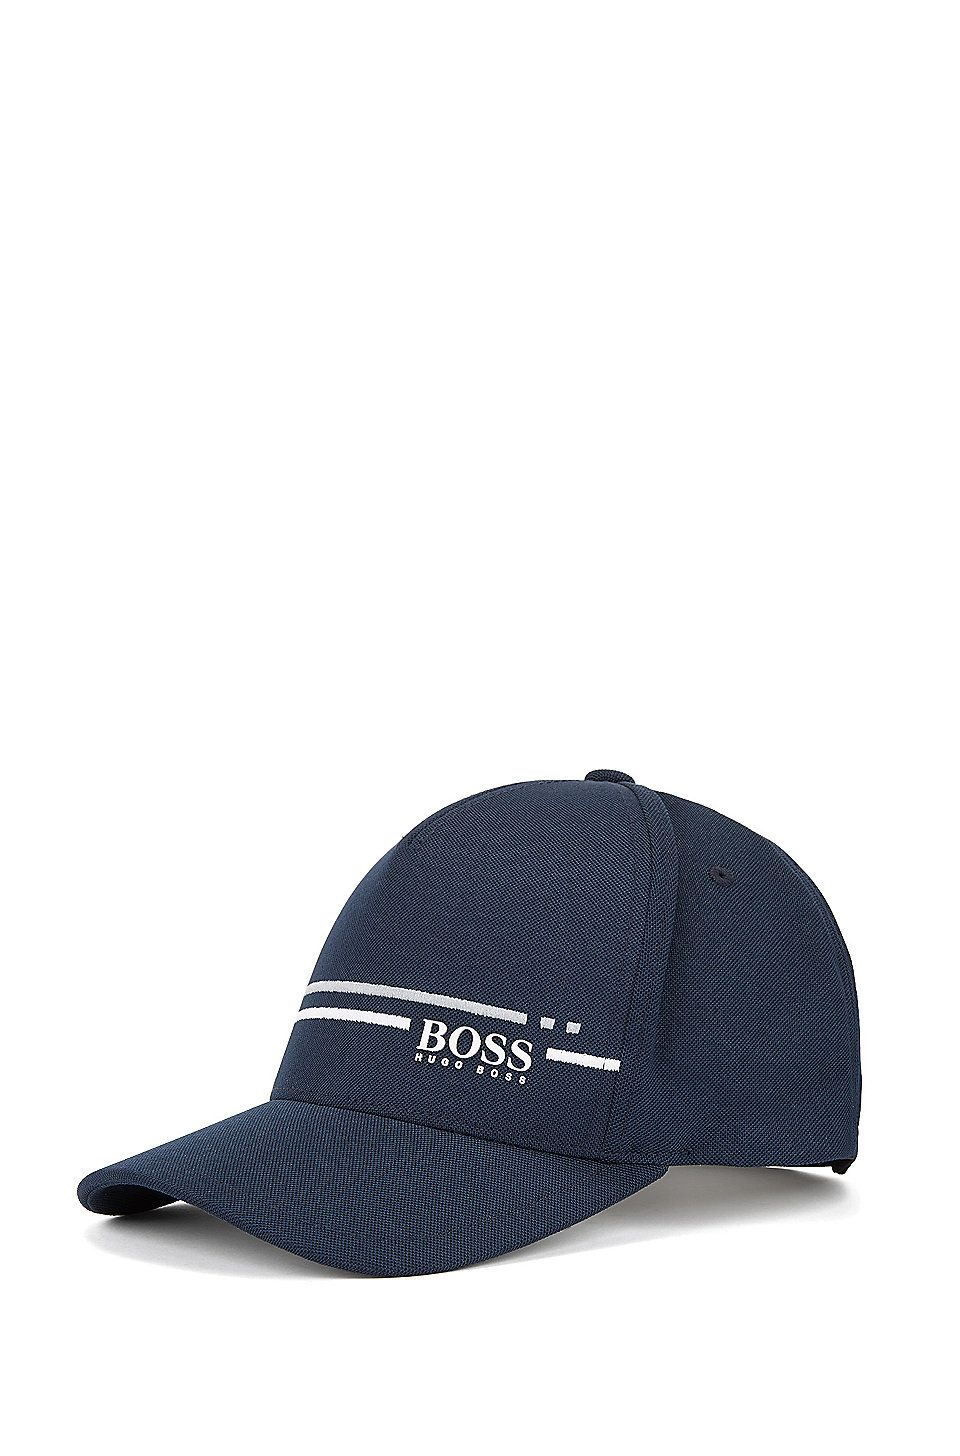 HUGO BOSS Piqué-mesh baseball cap with embroidered stripe - Dark Blue  Premium Golf Collection ff803e3b99e0